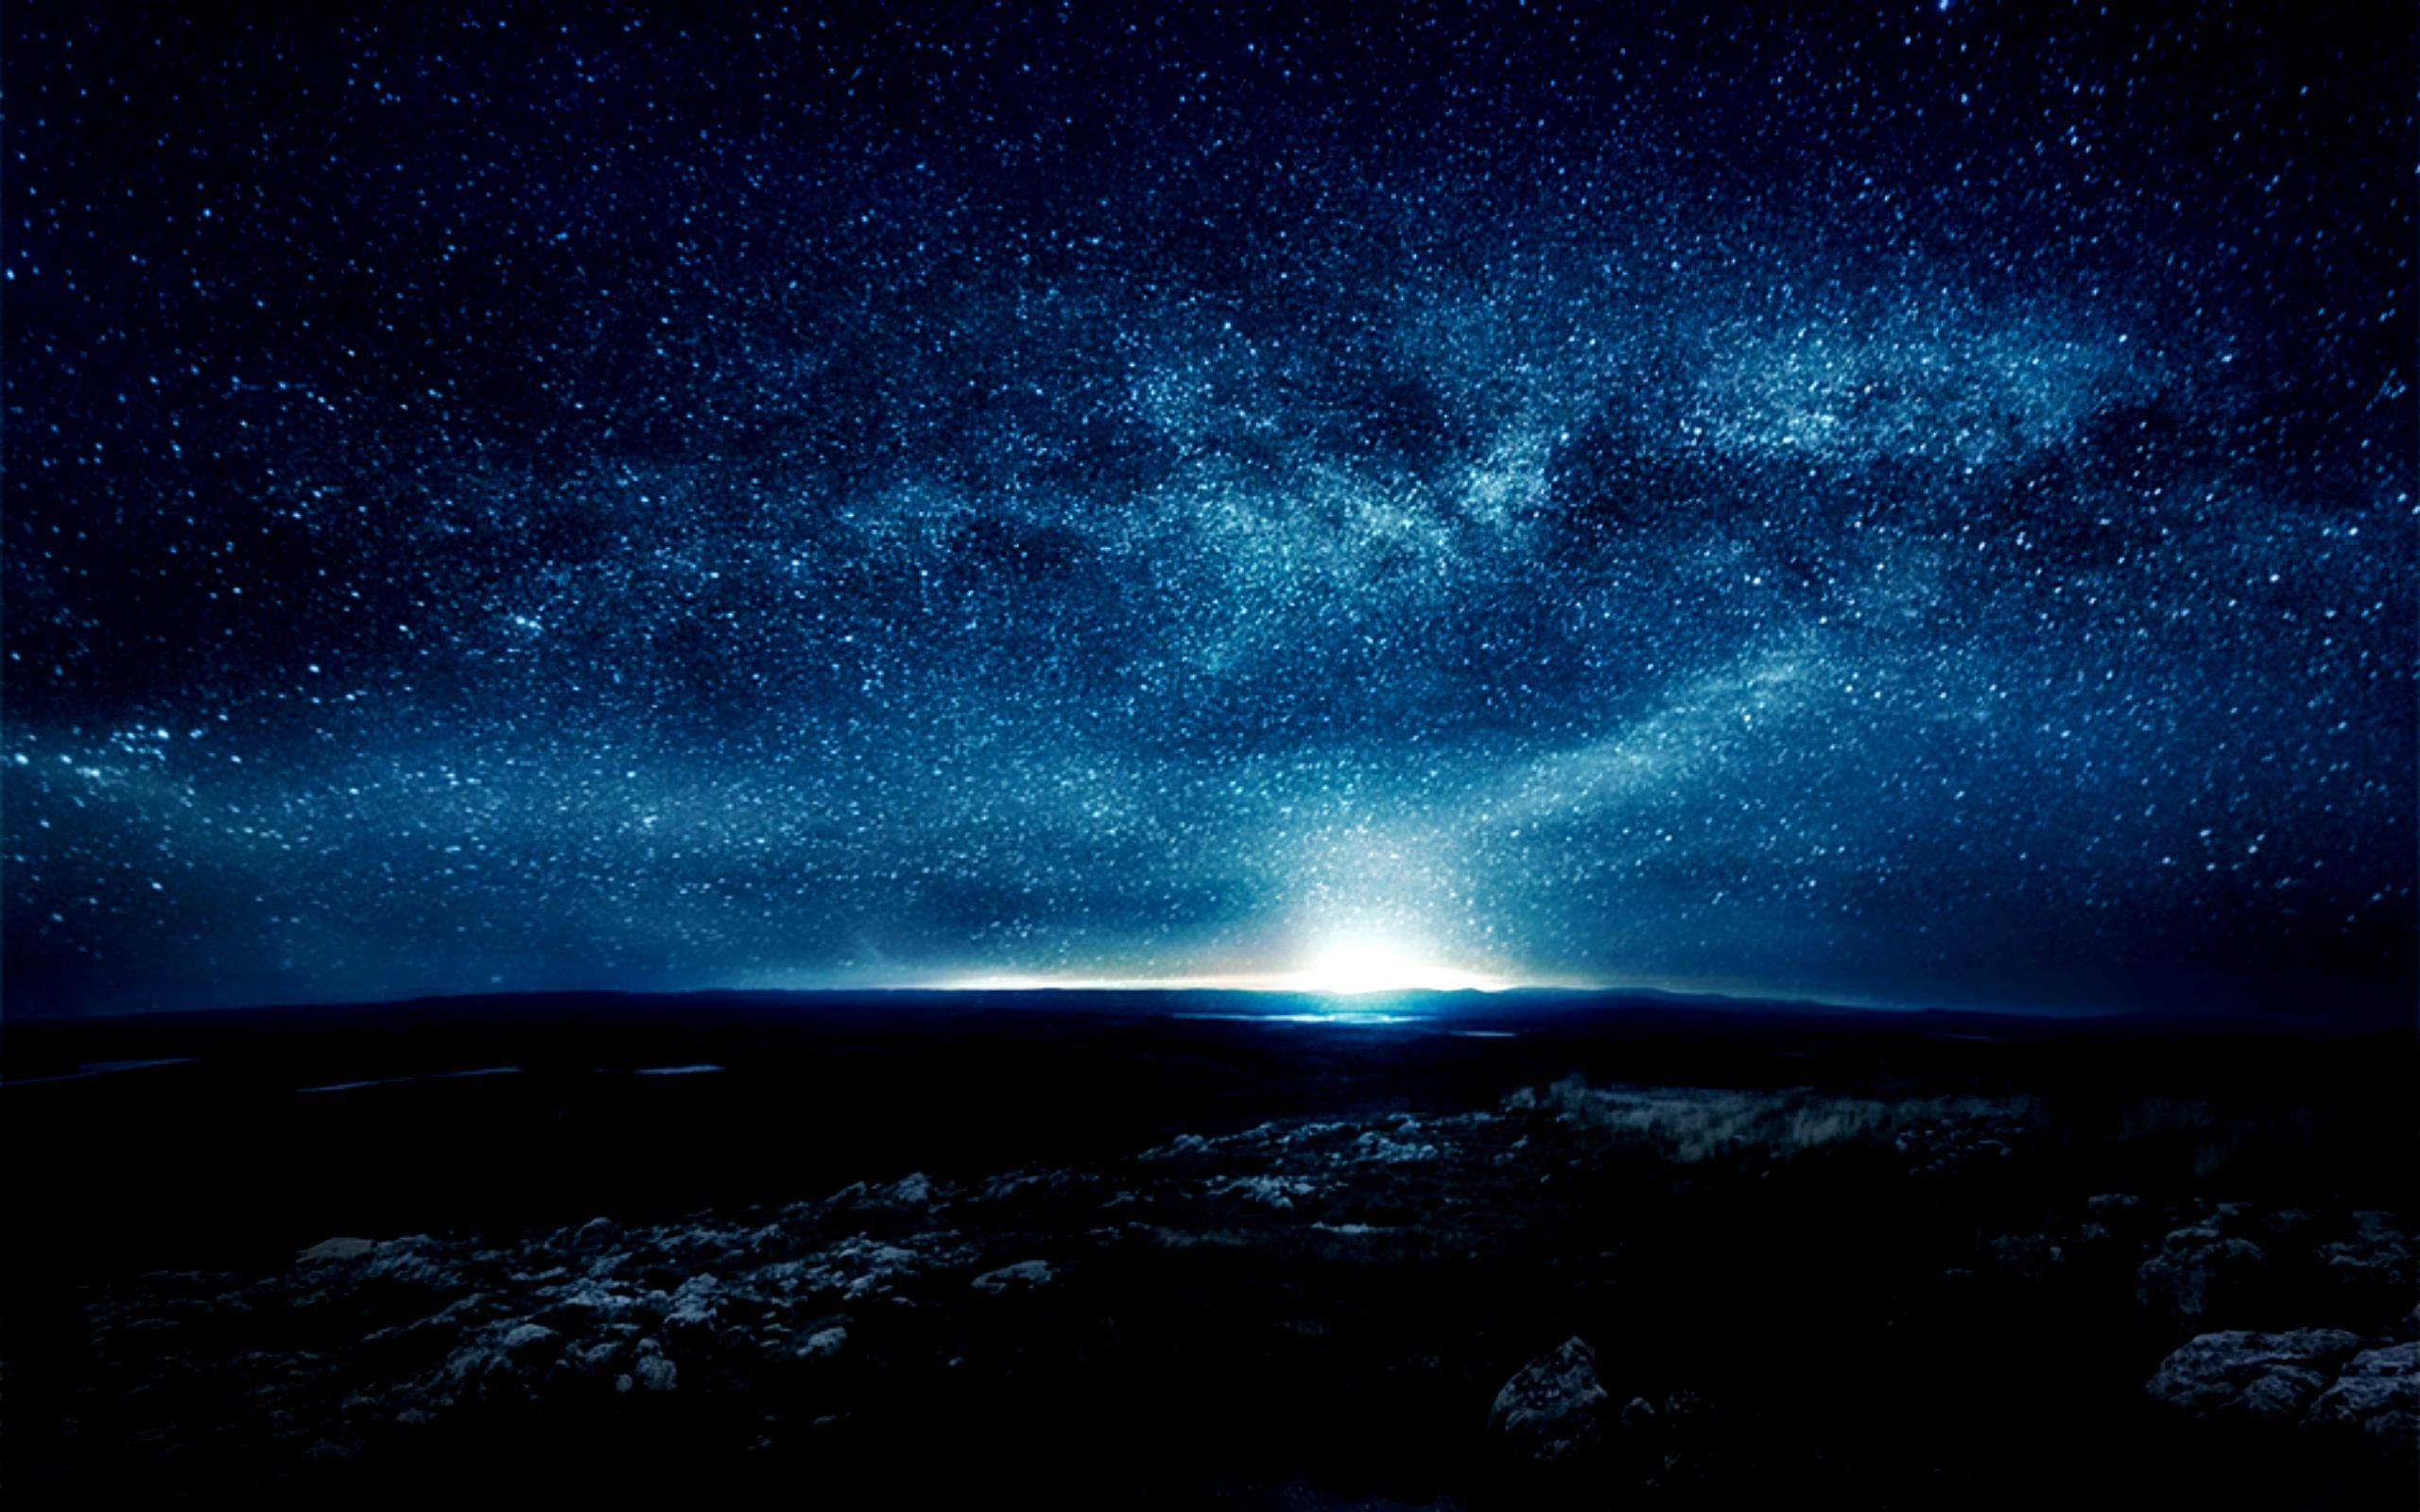 Starry Night Sky Wallpapers Wallpaper Cave #7104